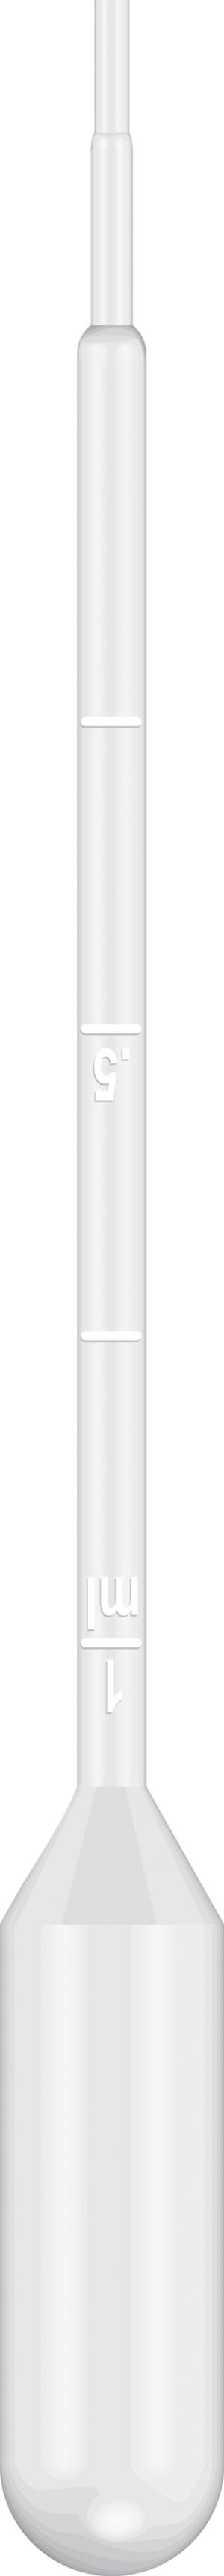 SIMPORT DROPETTE DISPOSABLE TRANSFER PIPETS : P200-52 CS                     $151.71 Stocked